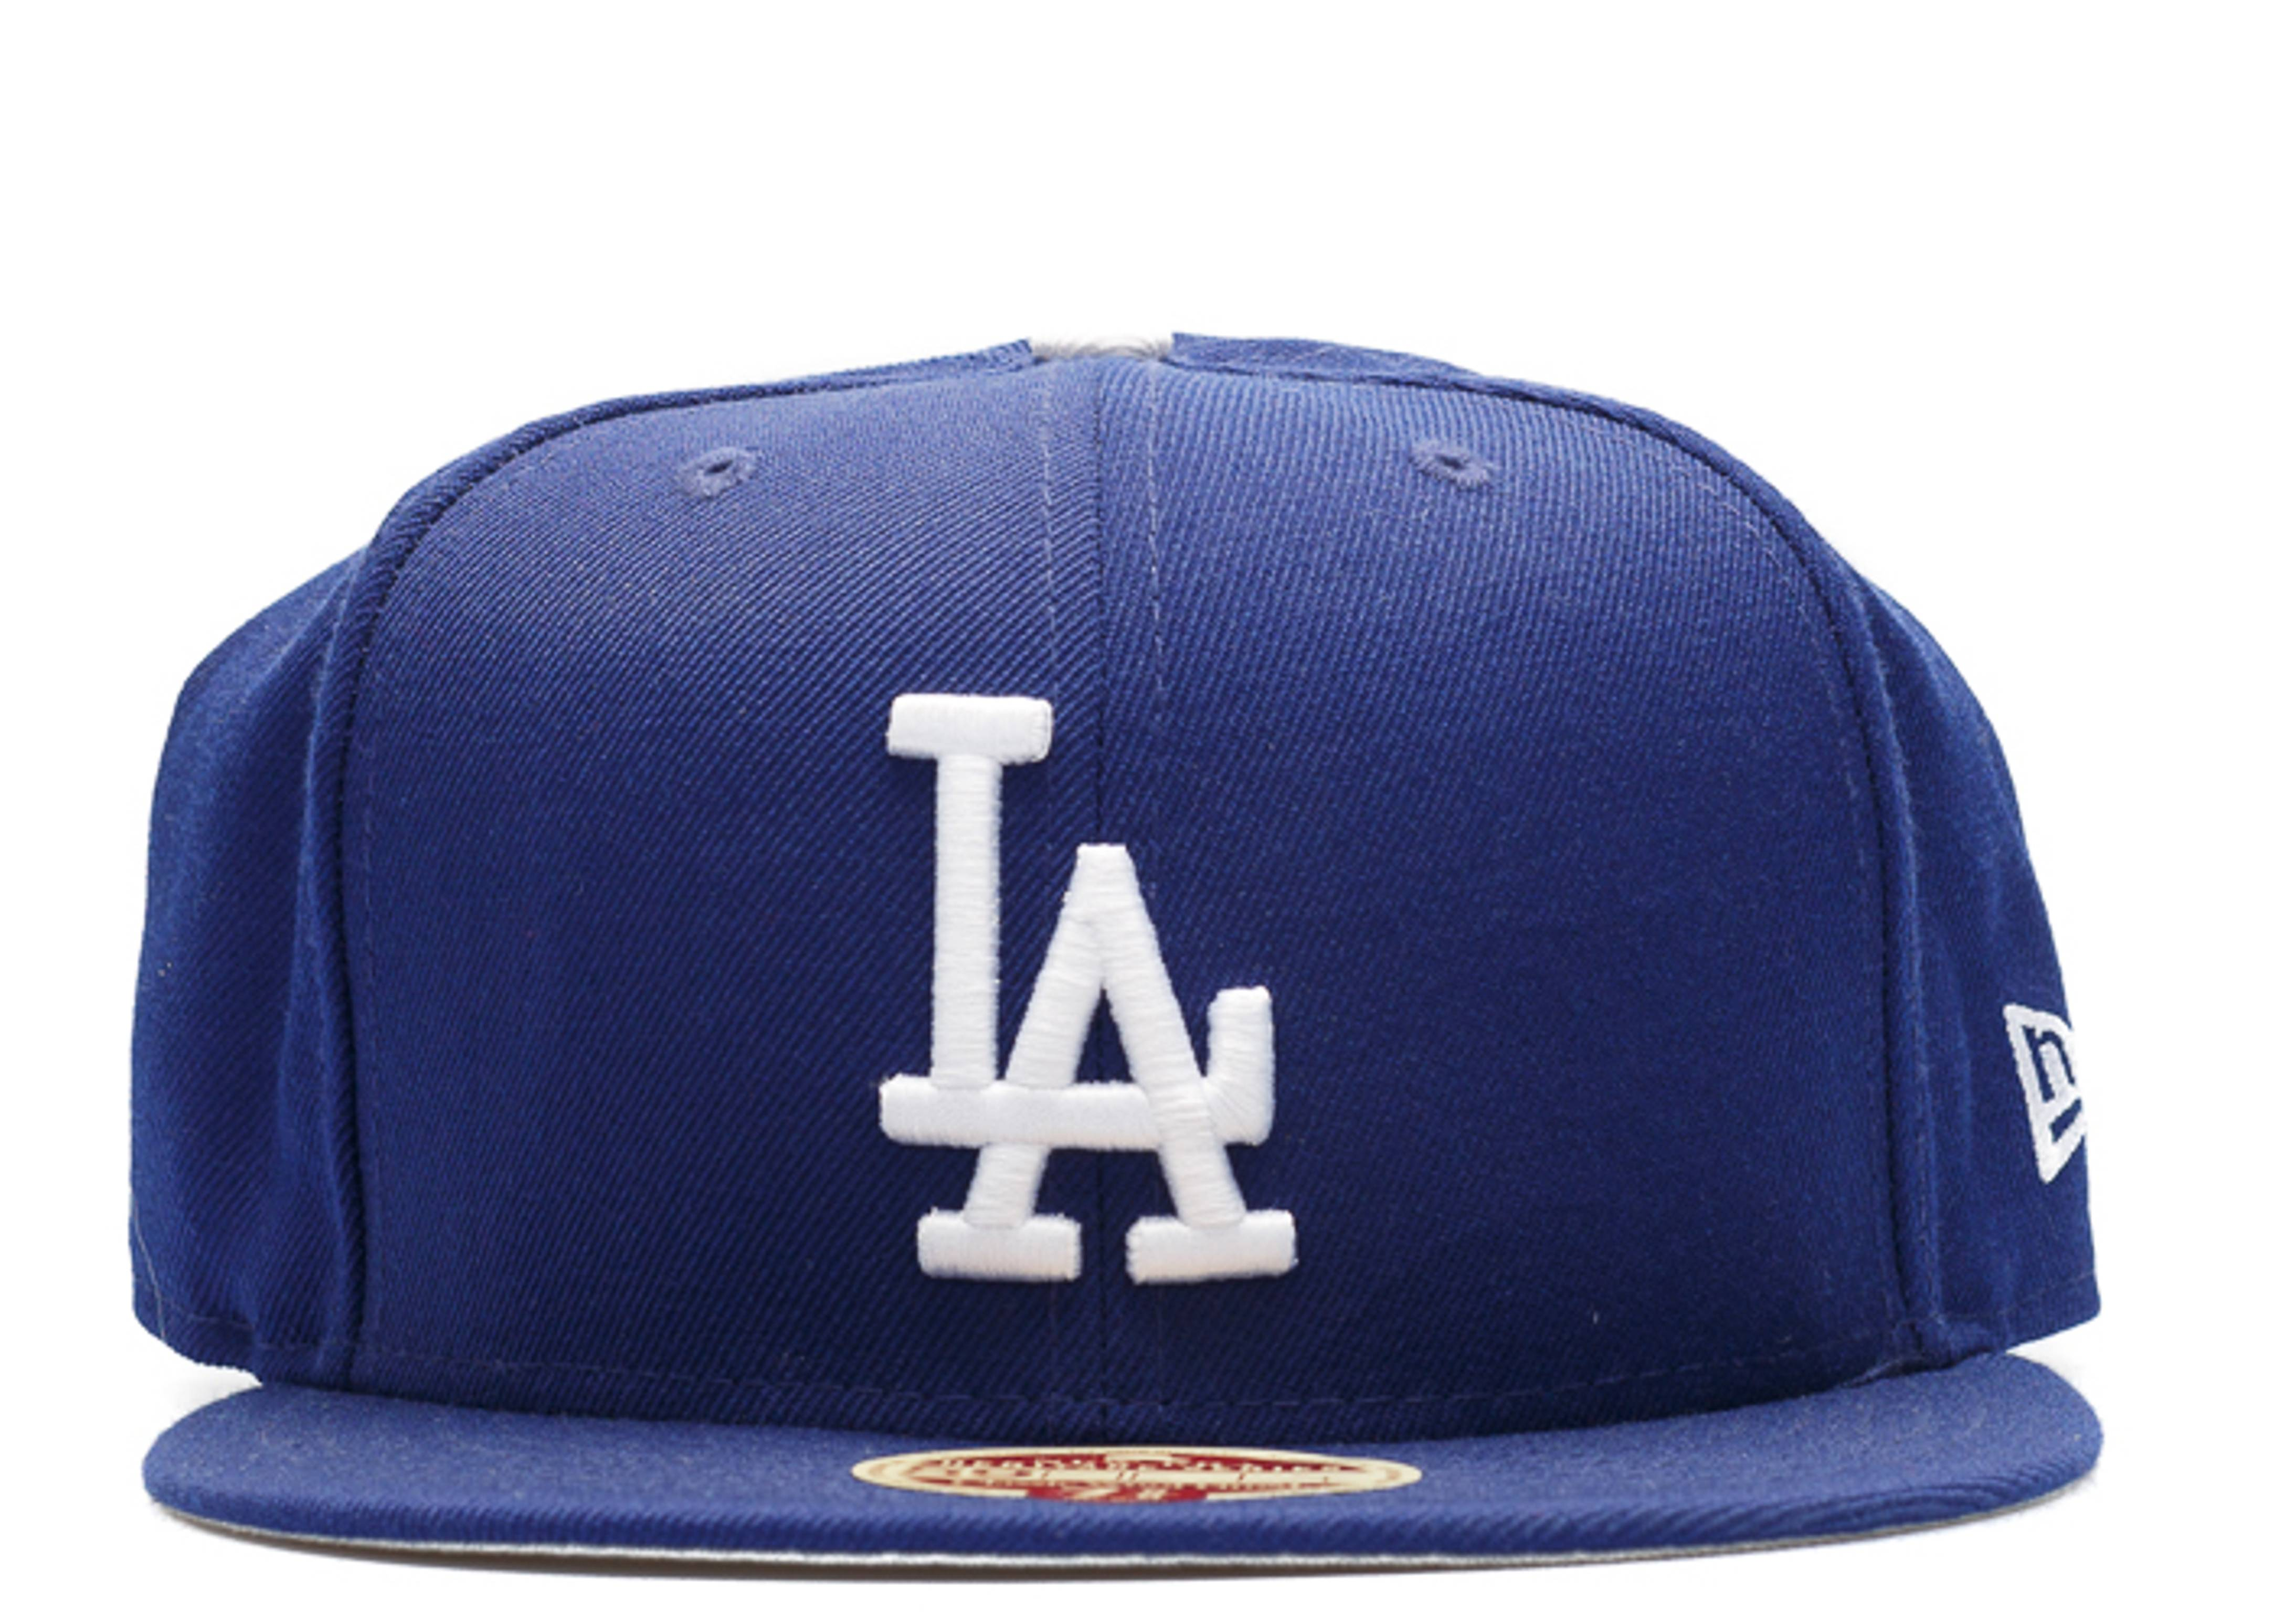 """los angeles dodgers fitted """"heritage series"""""""